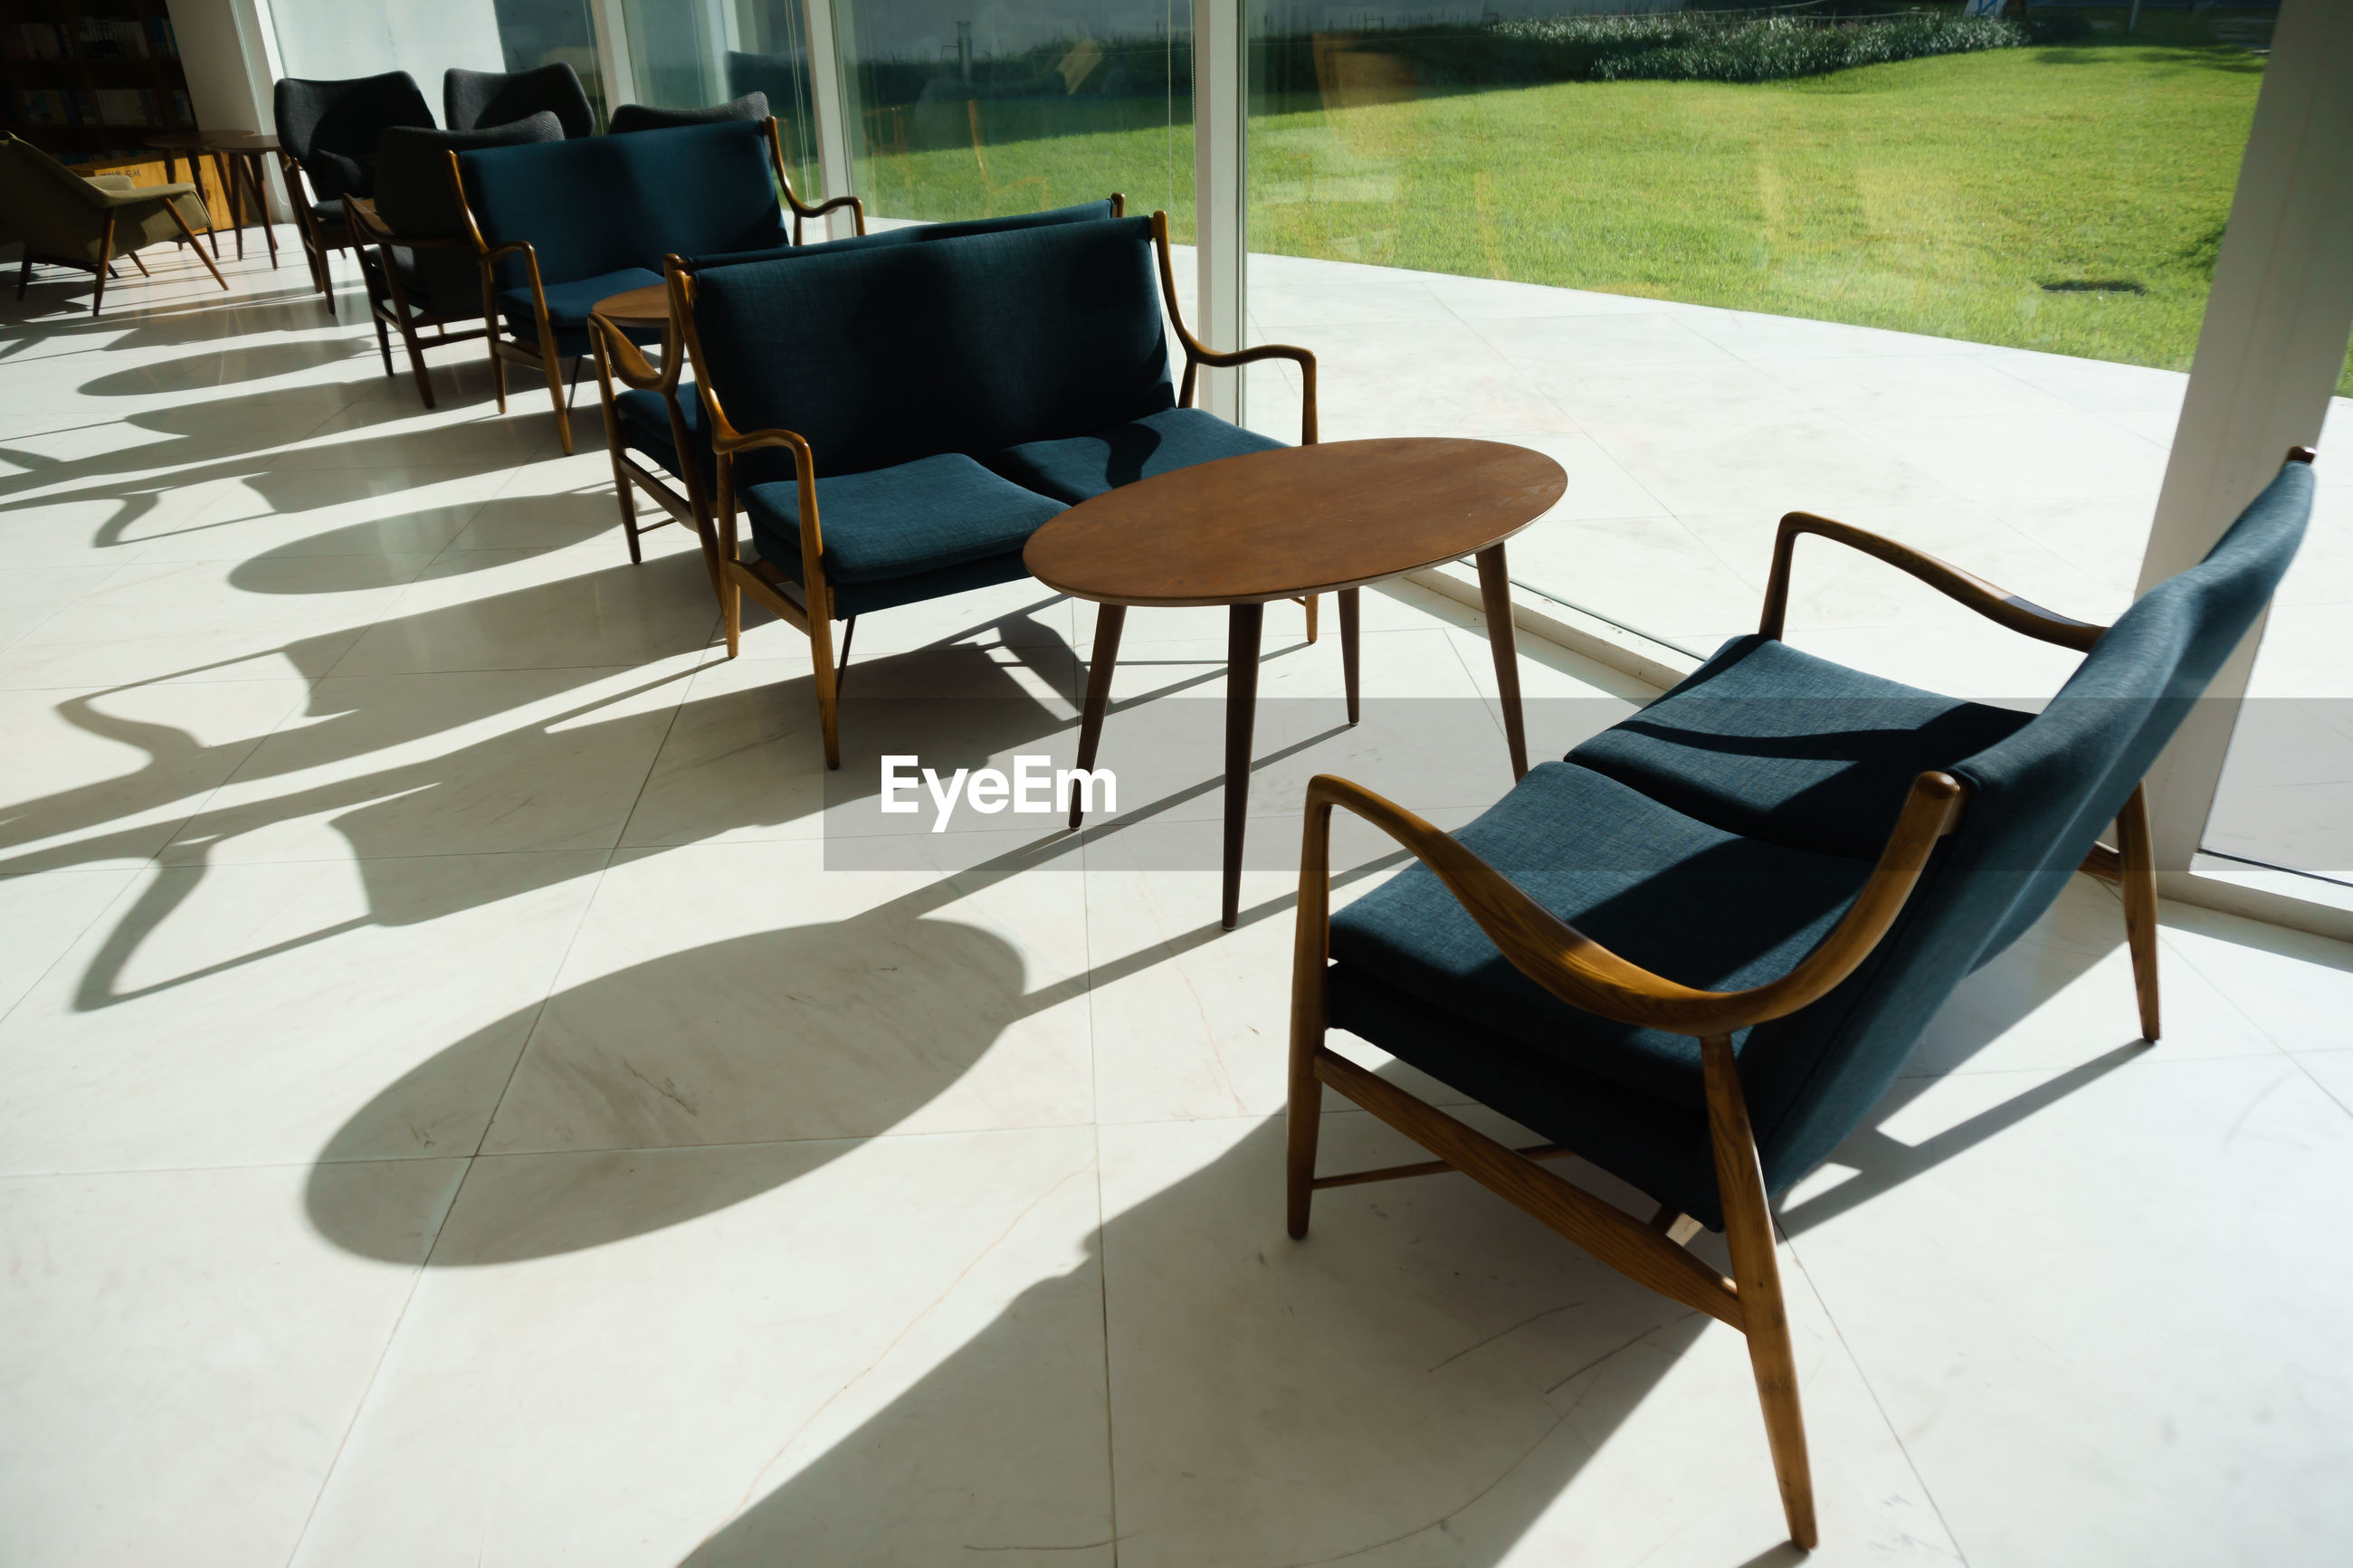 Empty chairs and table against tiled floor